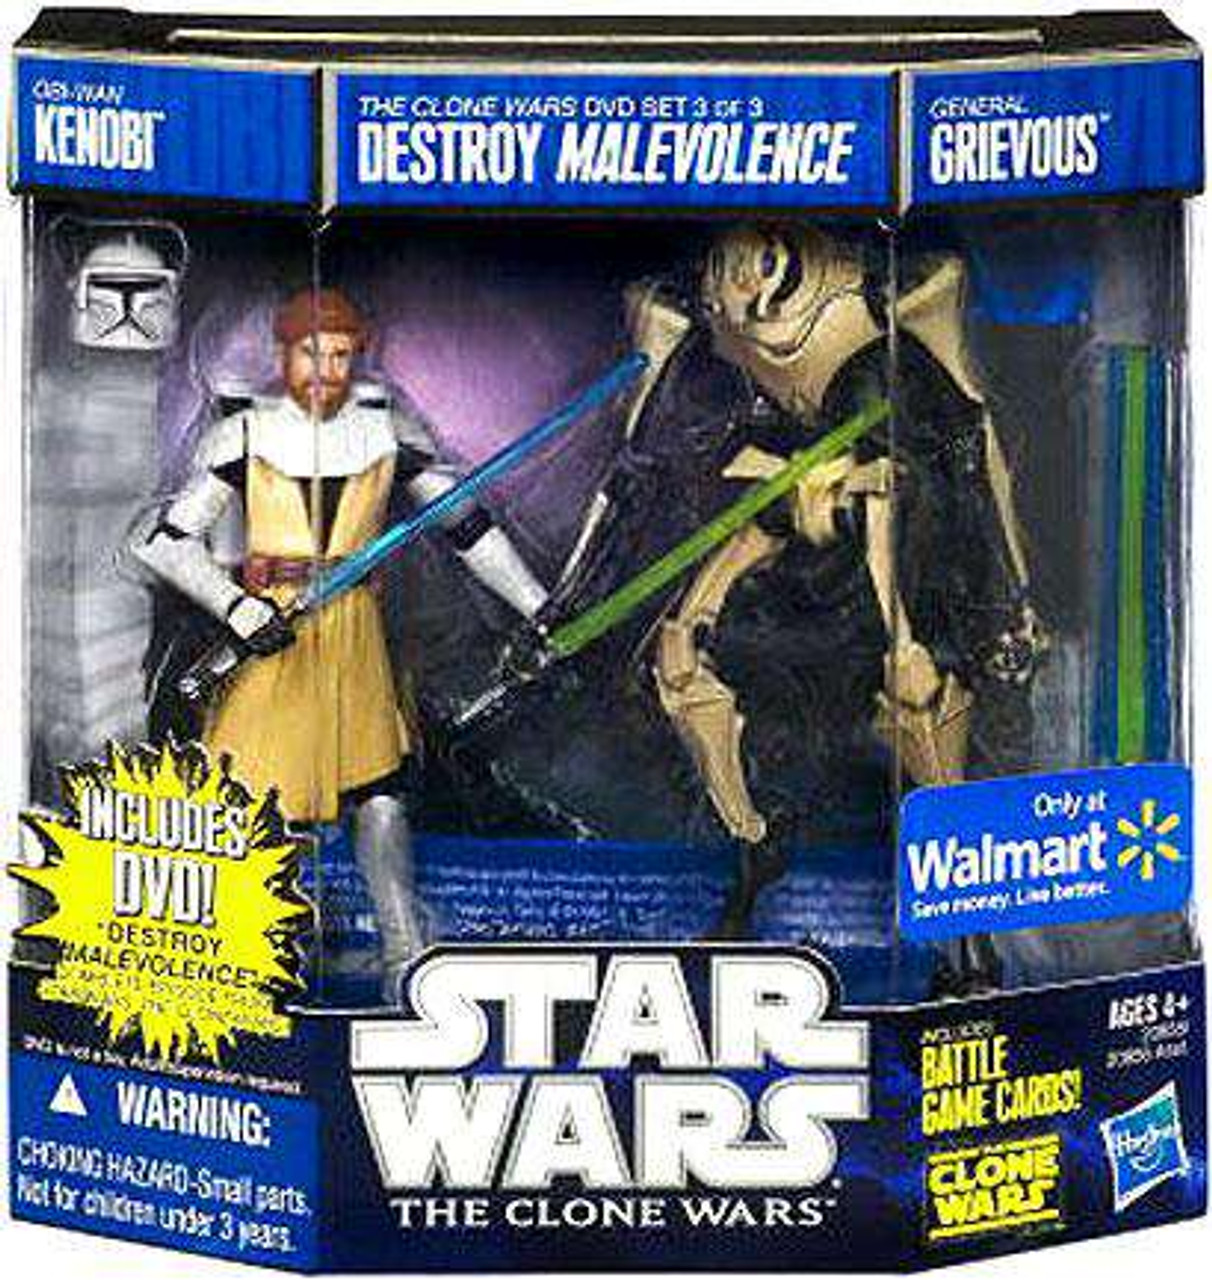 Star Wars The Clone Wars Obi Wan Kenobi General Grievous Exclusive 3 75 Action Figure Dvd 2 Pack 3 Destroy Malevolence Hasbro Toys Toywiz